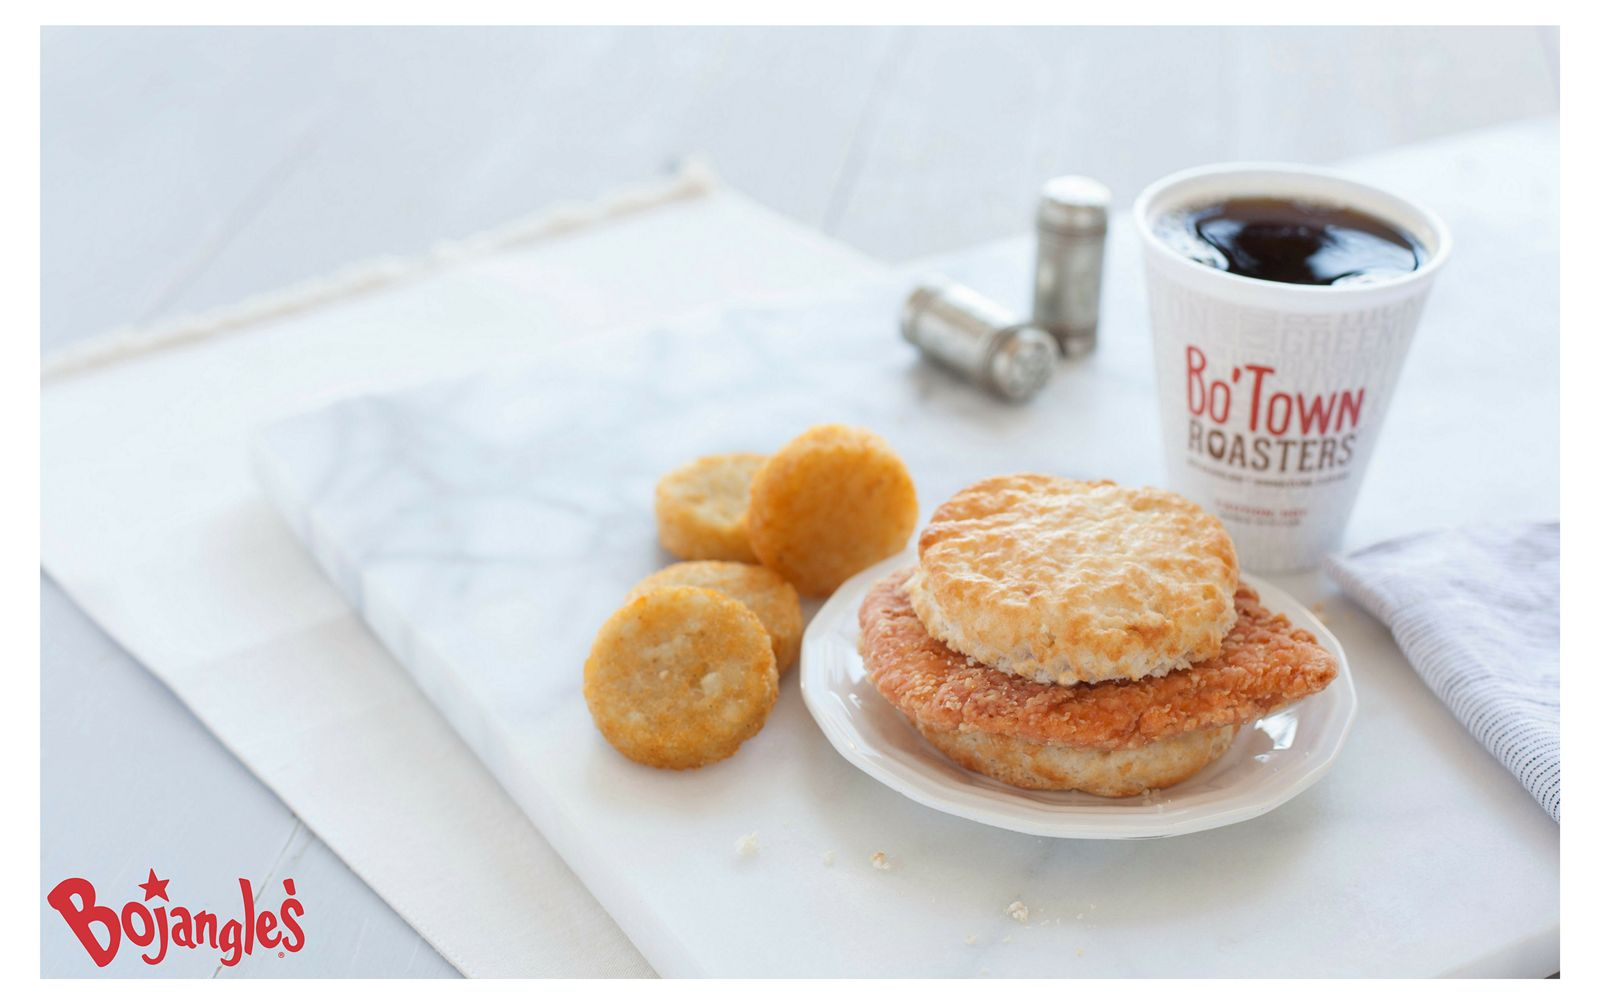 On National Buttermilk Biscuit Day, Choose Only the Best: Bojangles'